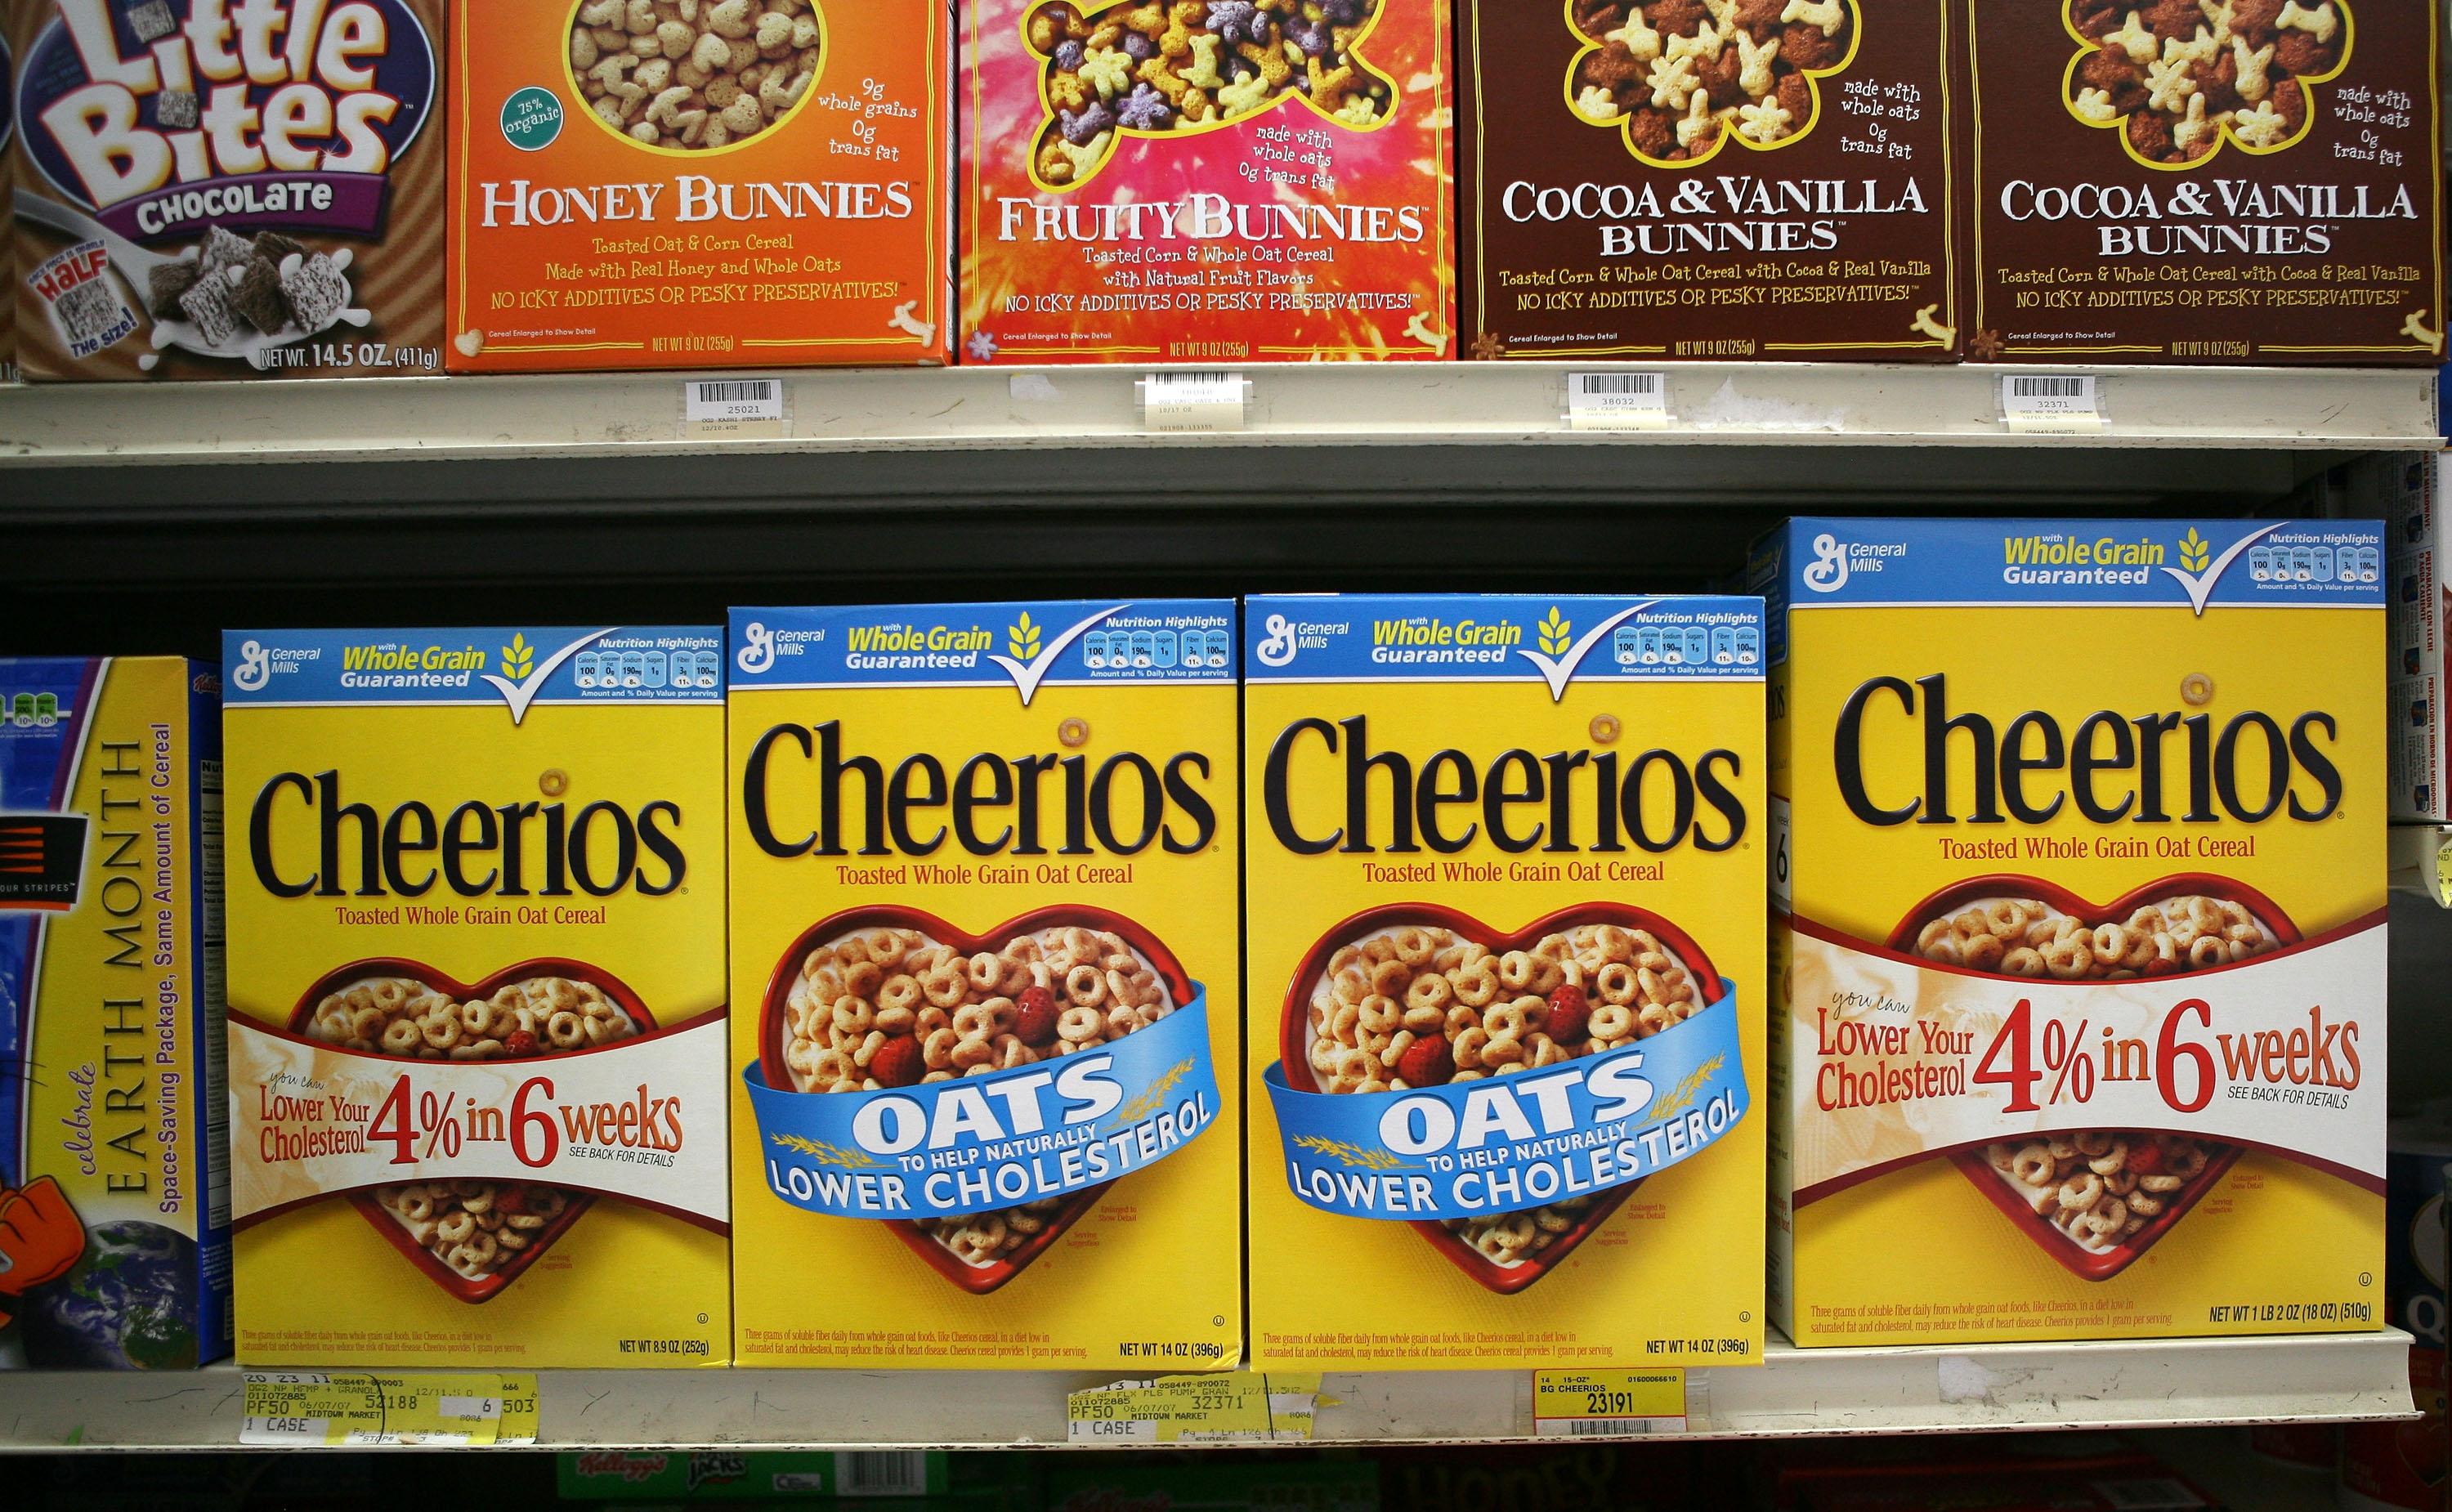 Boxes of Cheerios cereal are displayed on a shelf at the Midtown Market May 12, 2009 in Brisbane, California.